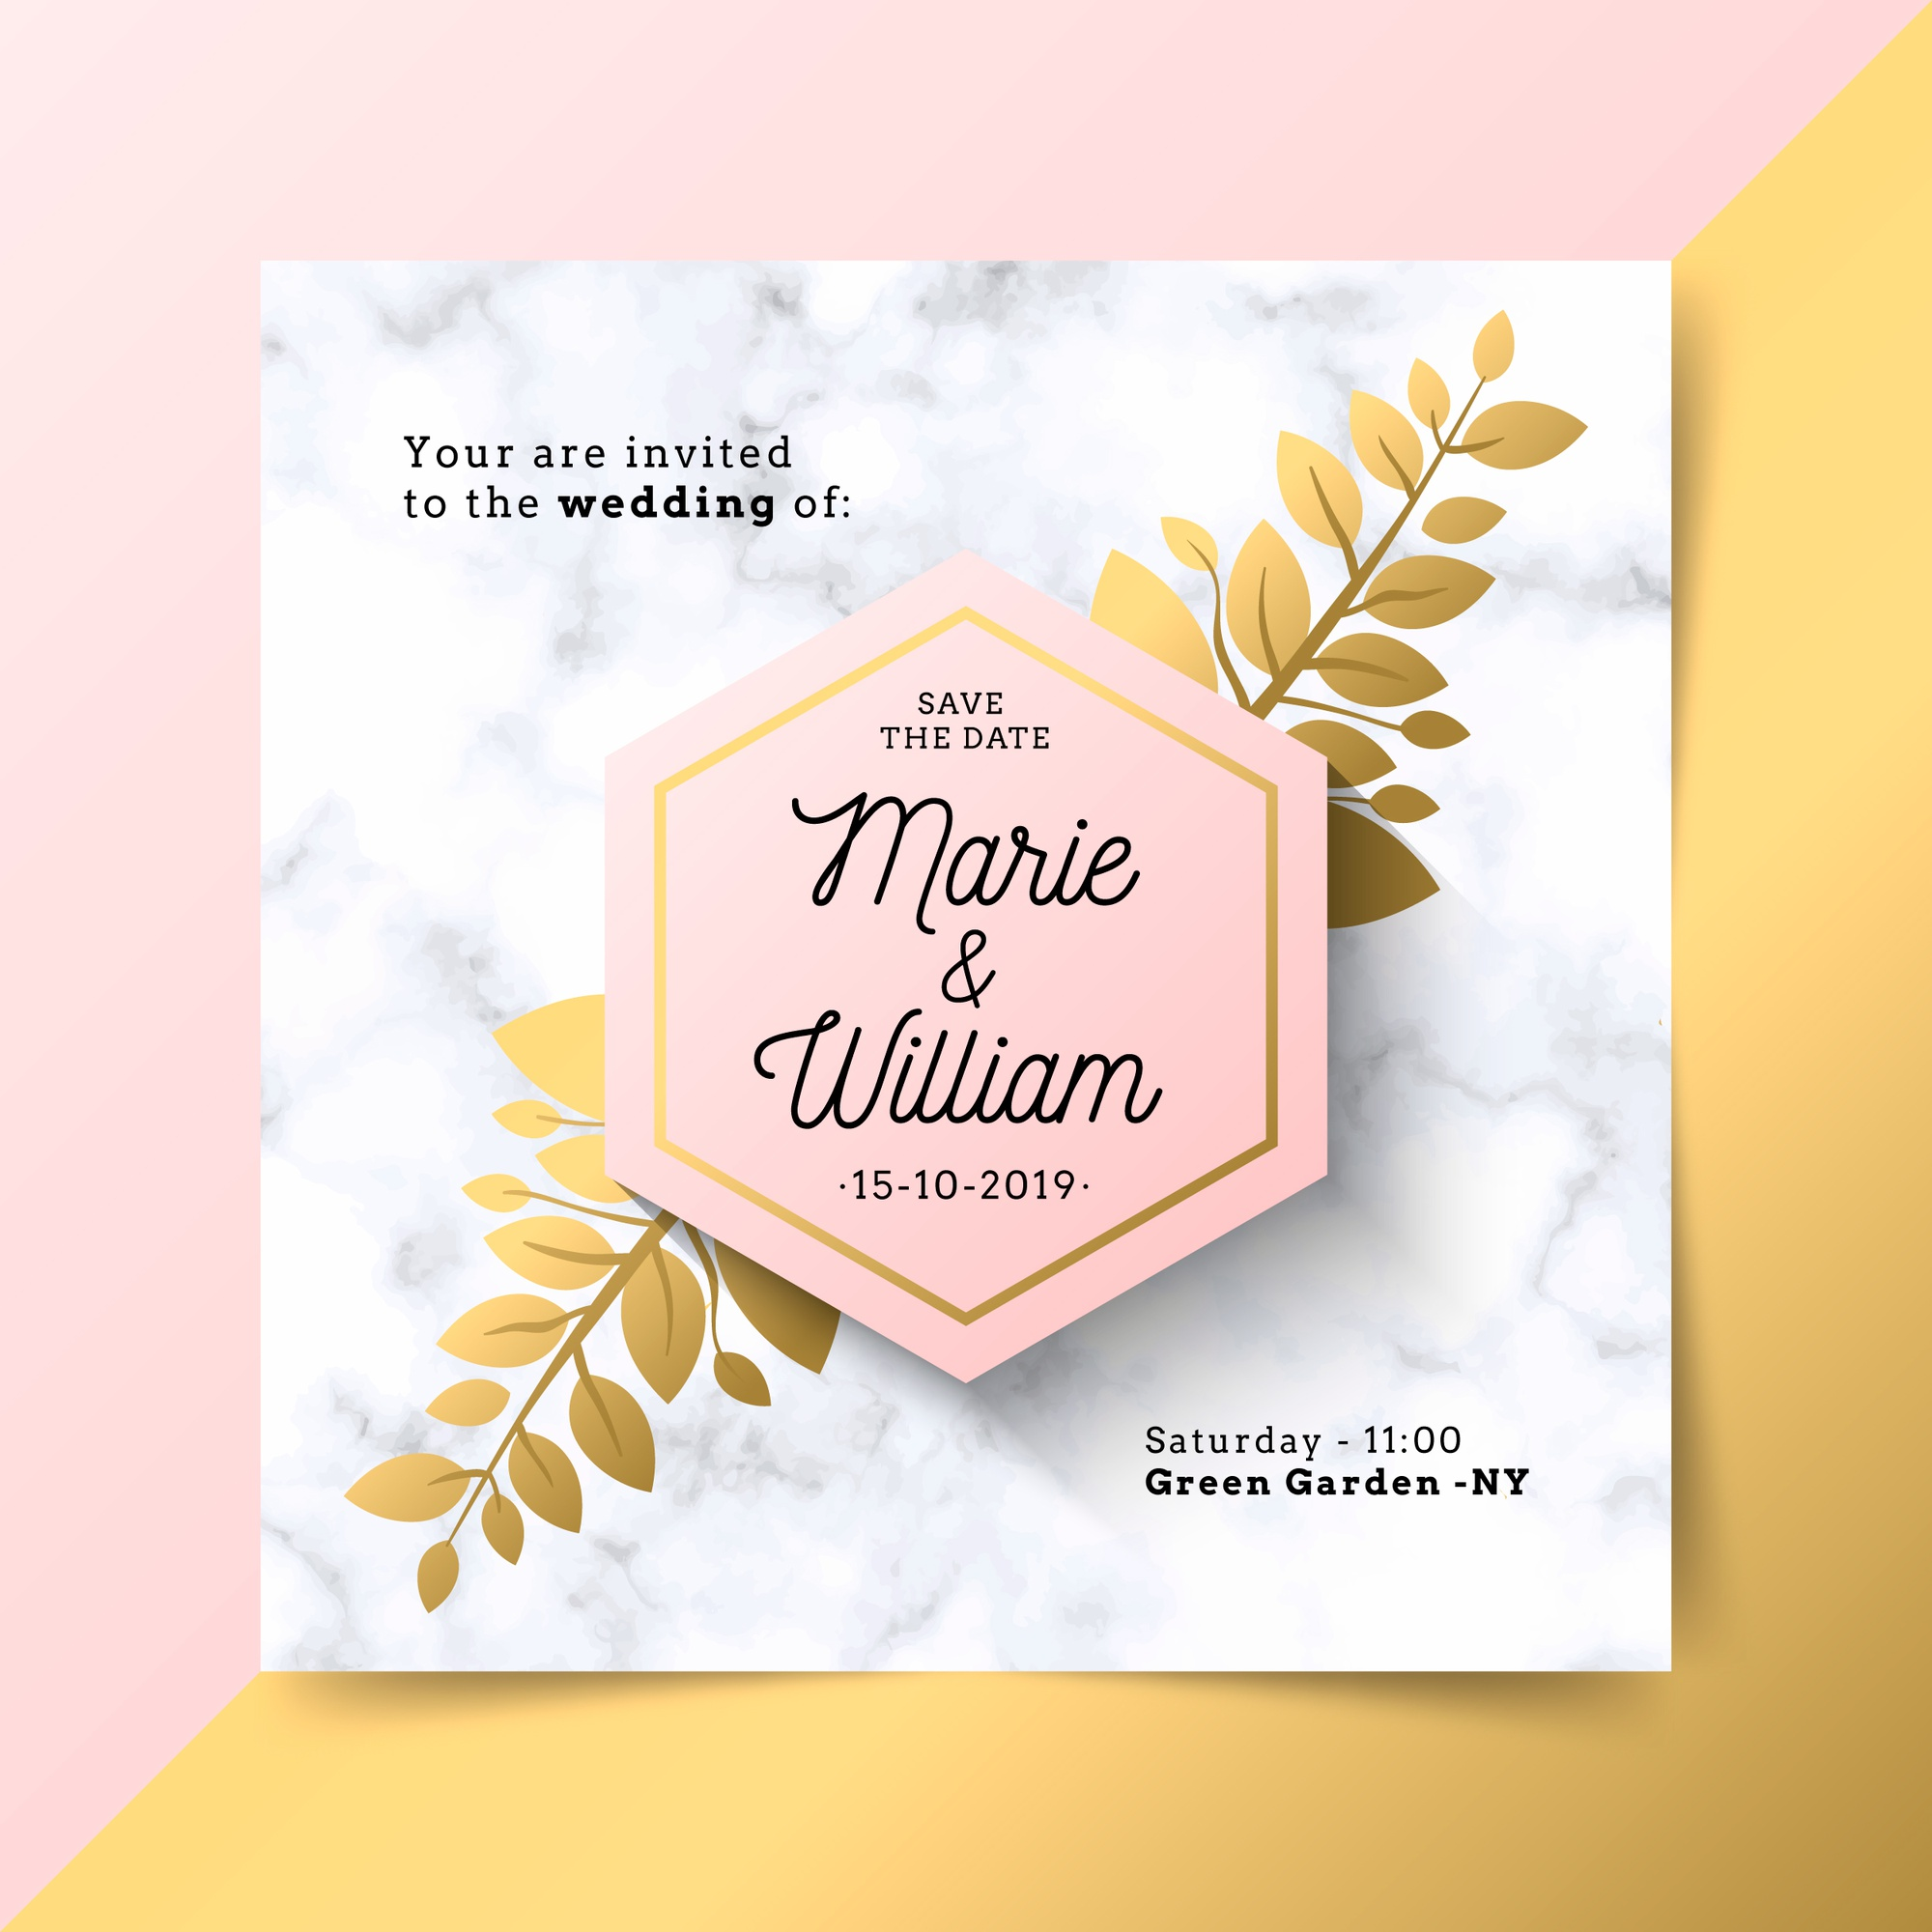 Luxury wedding invitation with marble texture